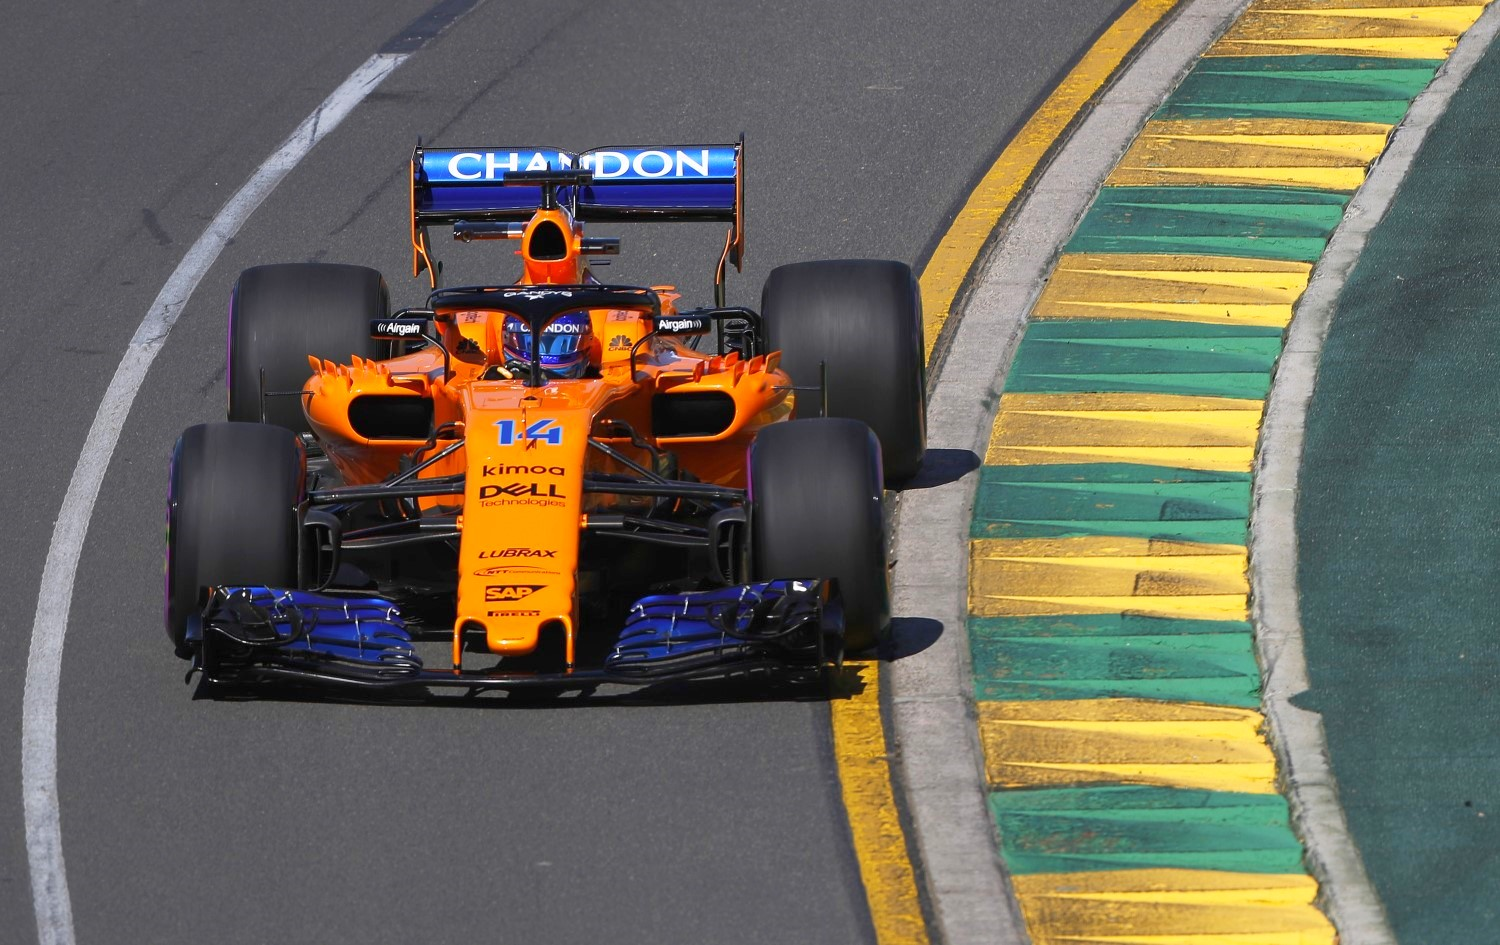 Alonso in the too-slow McLaren